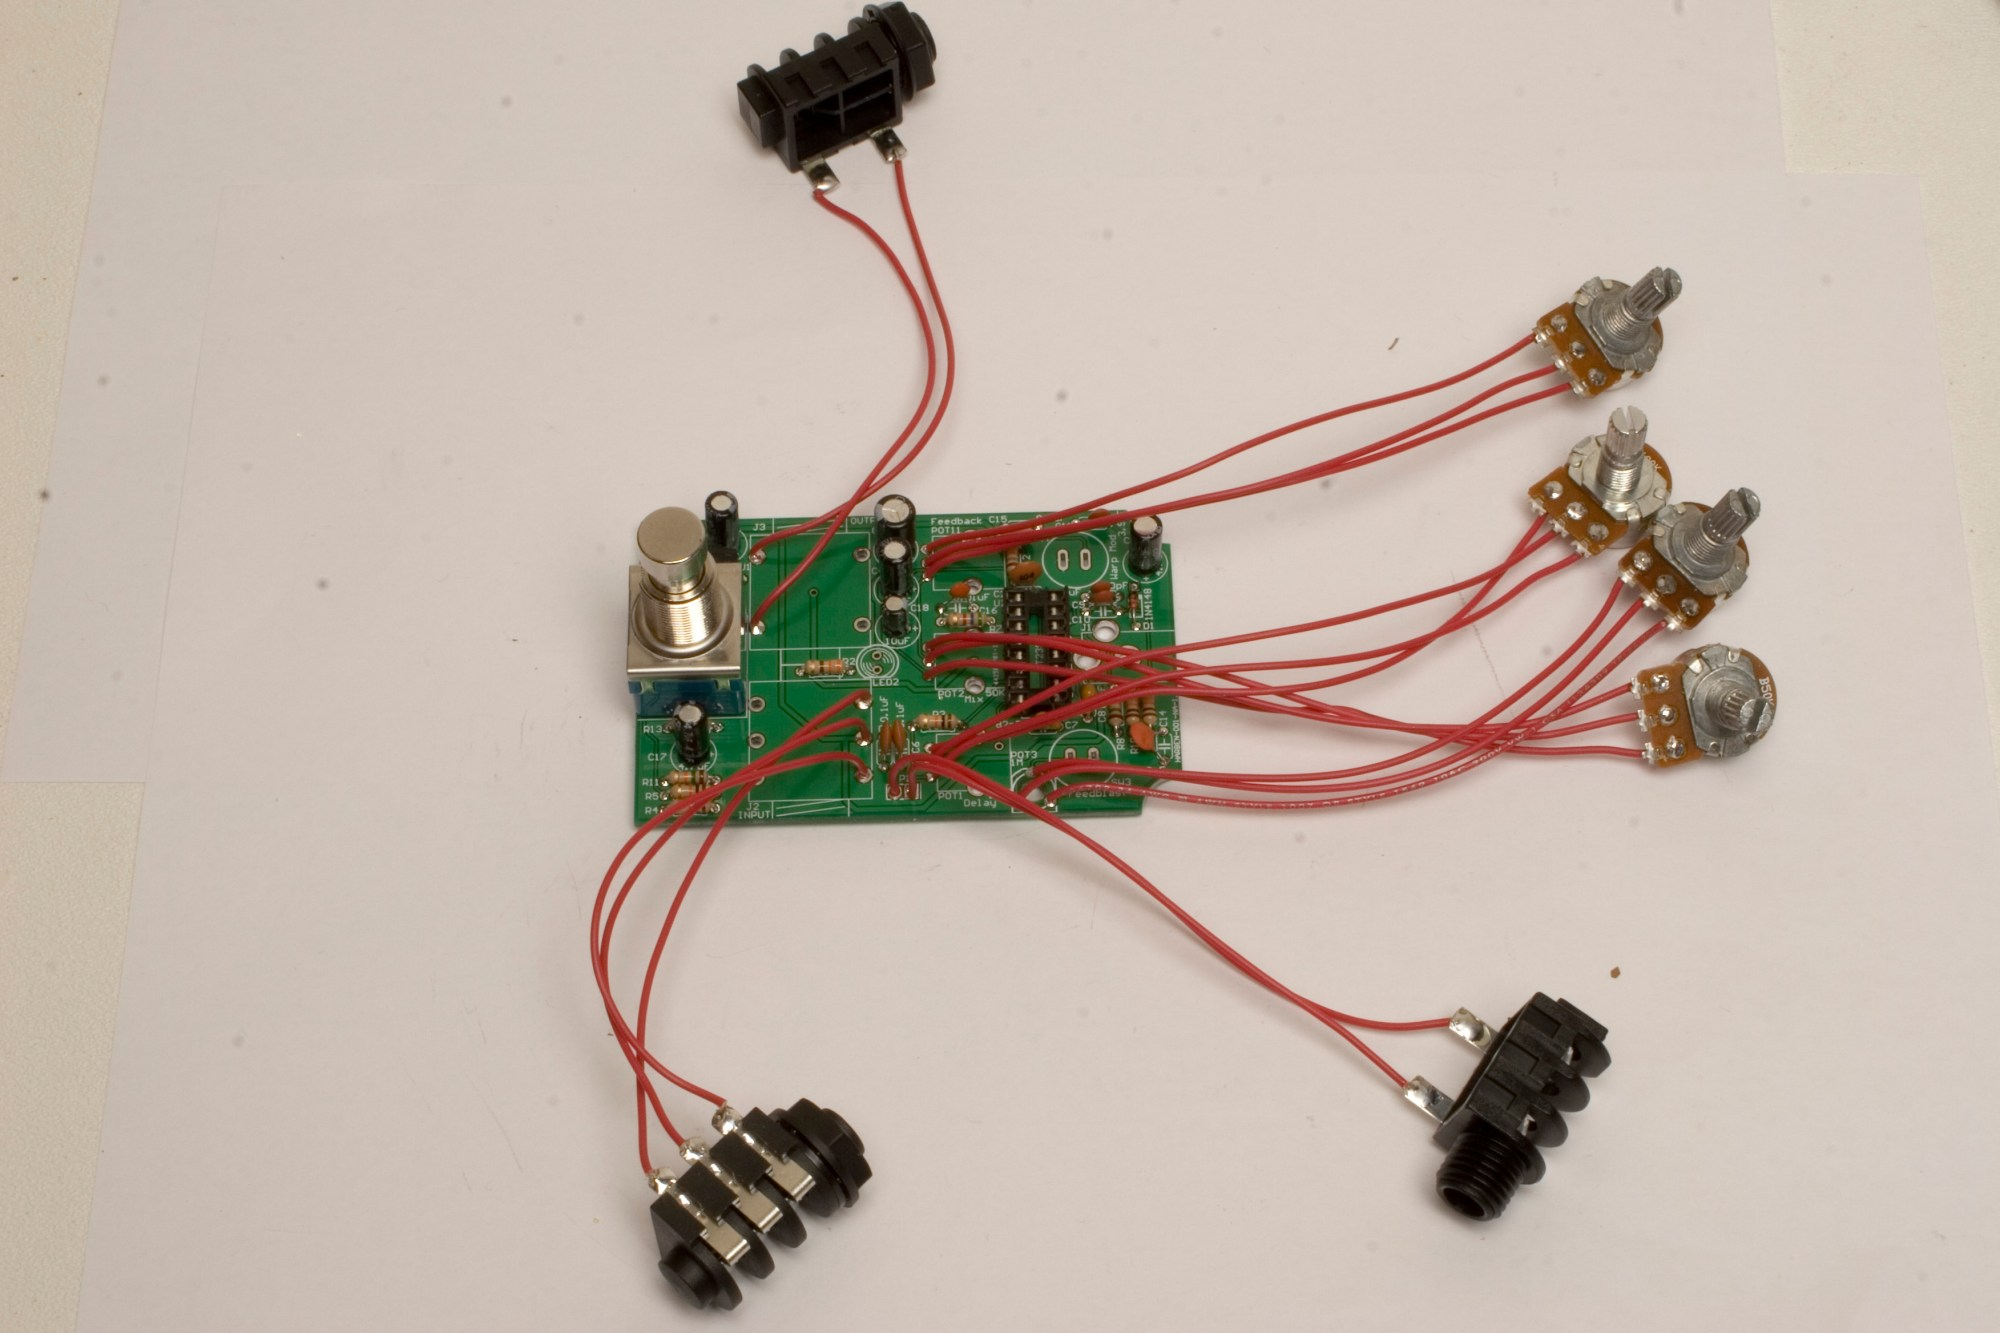 hight resolution of cosmic echo assembly step 8 1 4 jacks